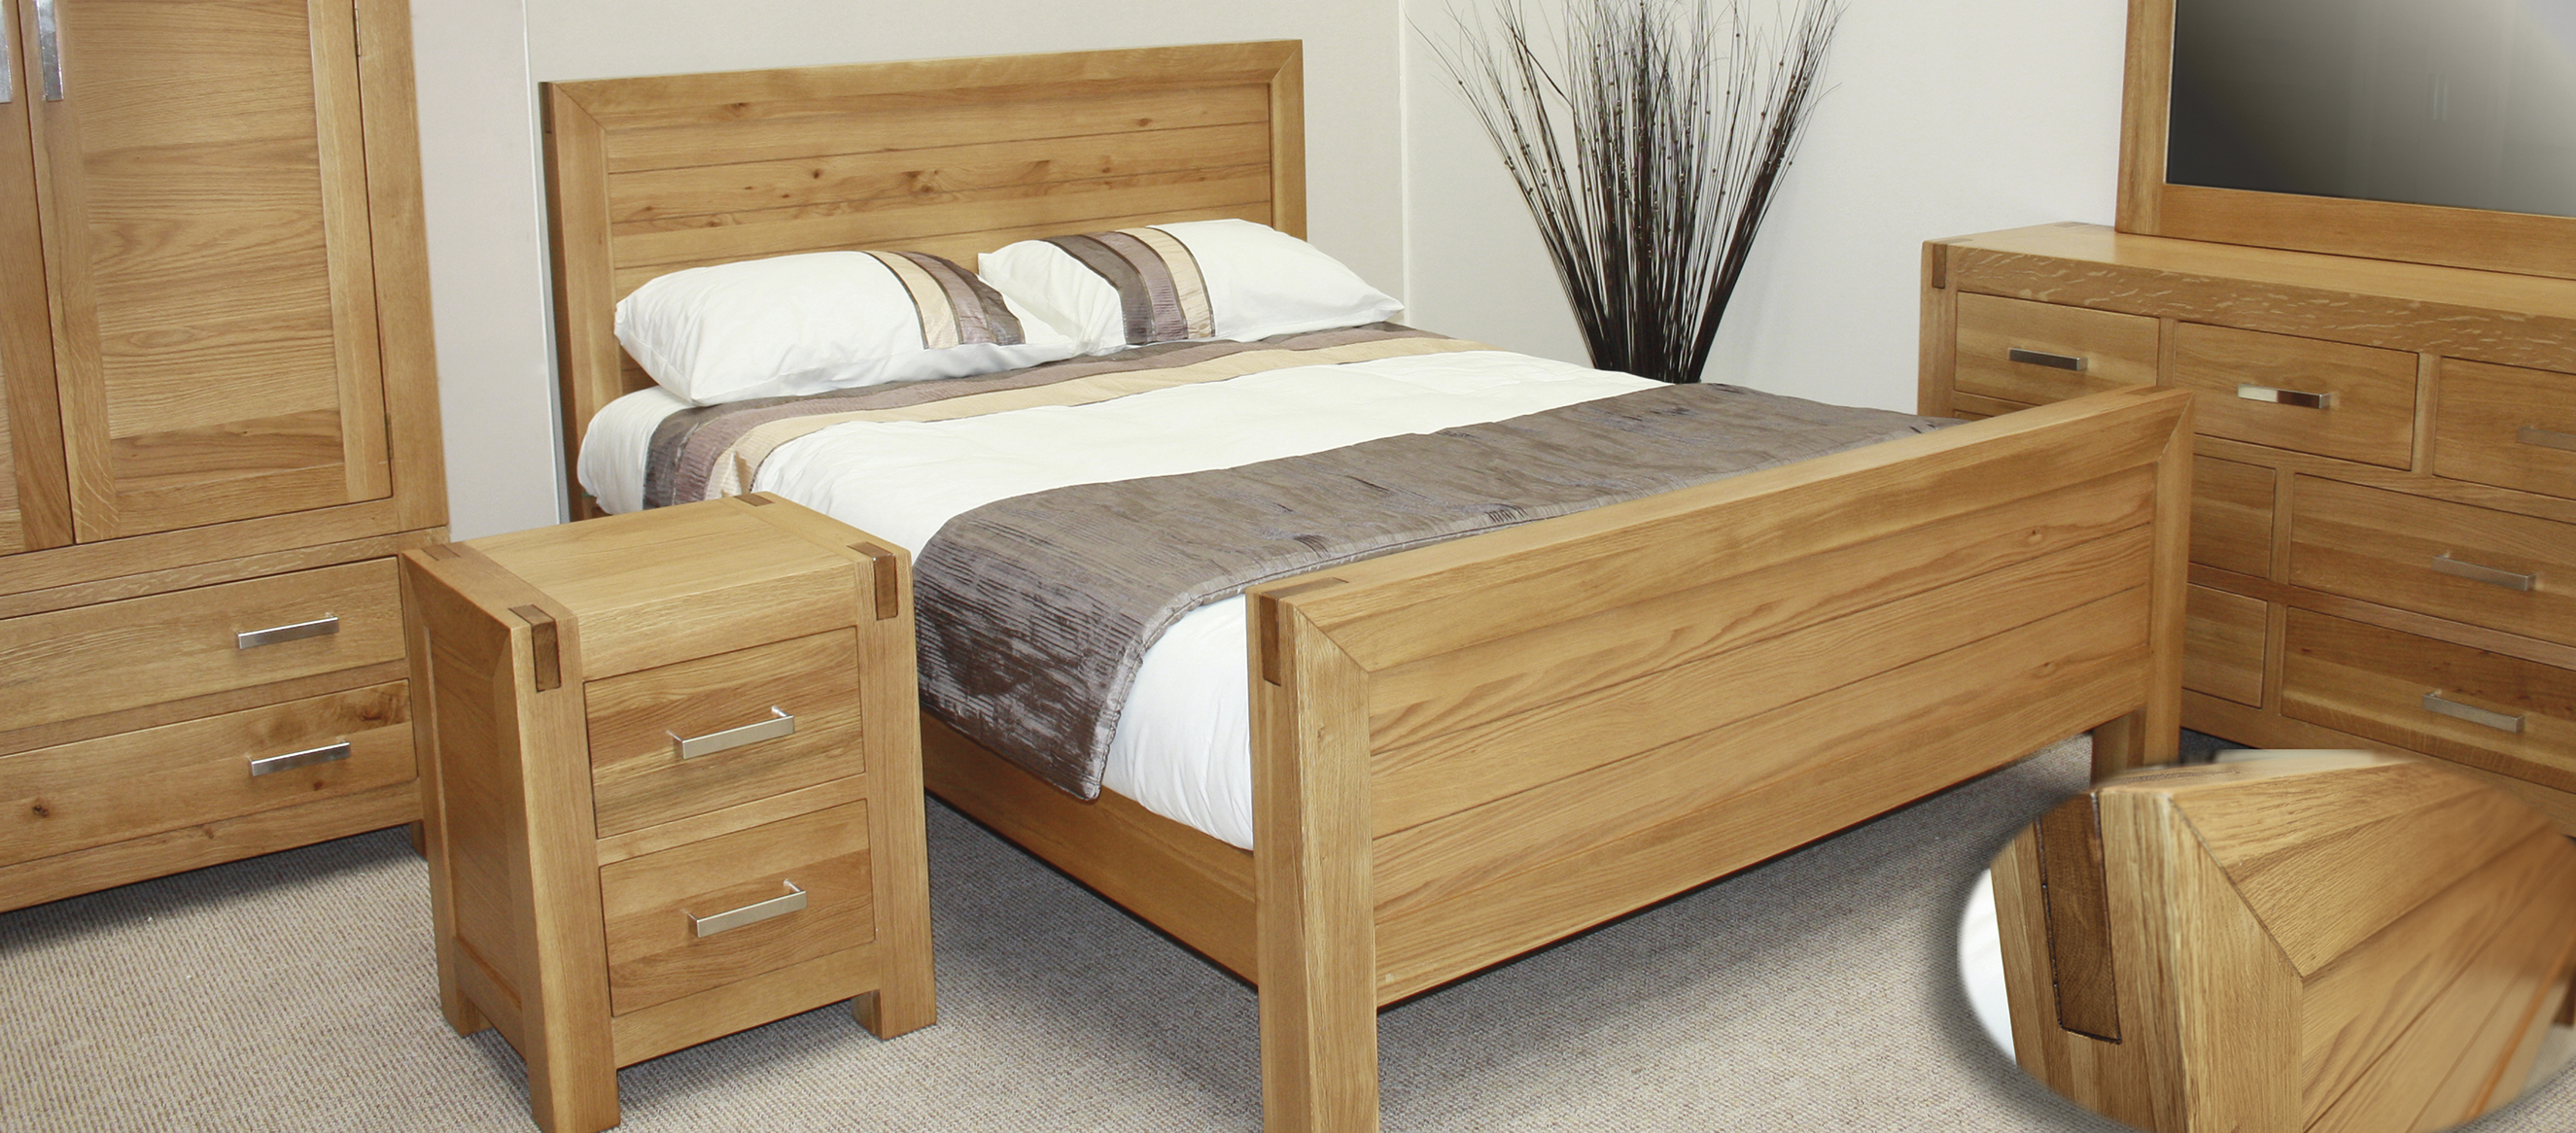 Somerset Bedroom Furniture Range